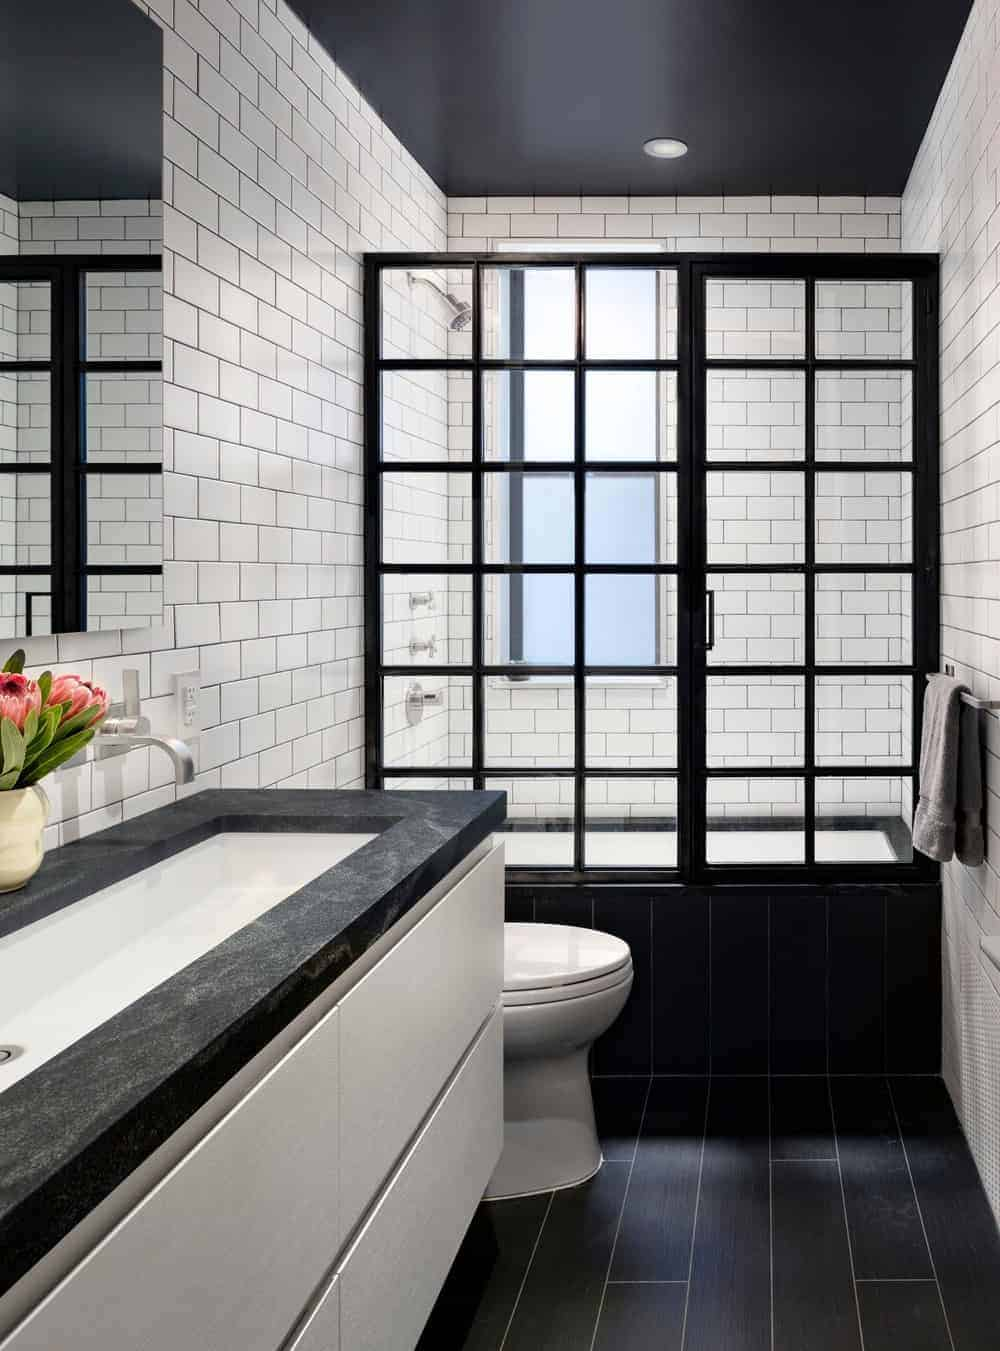 Industrial-style primary bathroom with a toilet and a walk-in shower enclosed in black aluminum framed door. It includes a floating sink vanity that matches the hardwood flooring and whitesubway tilescheme.